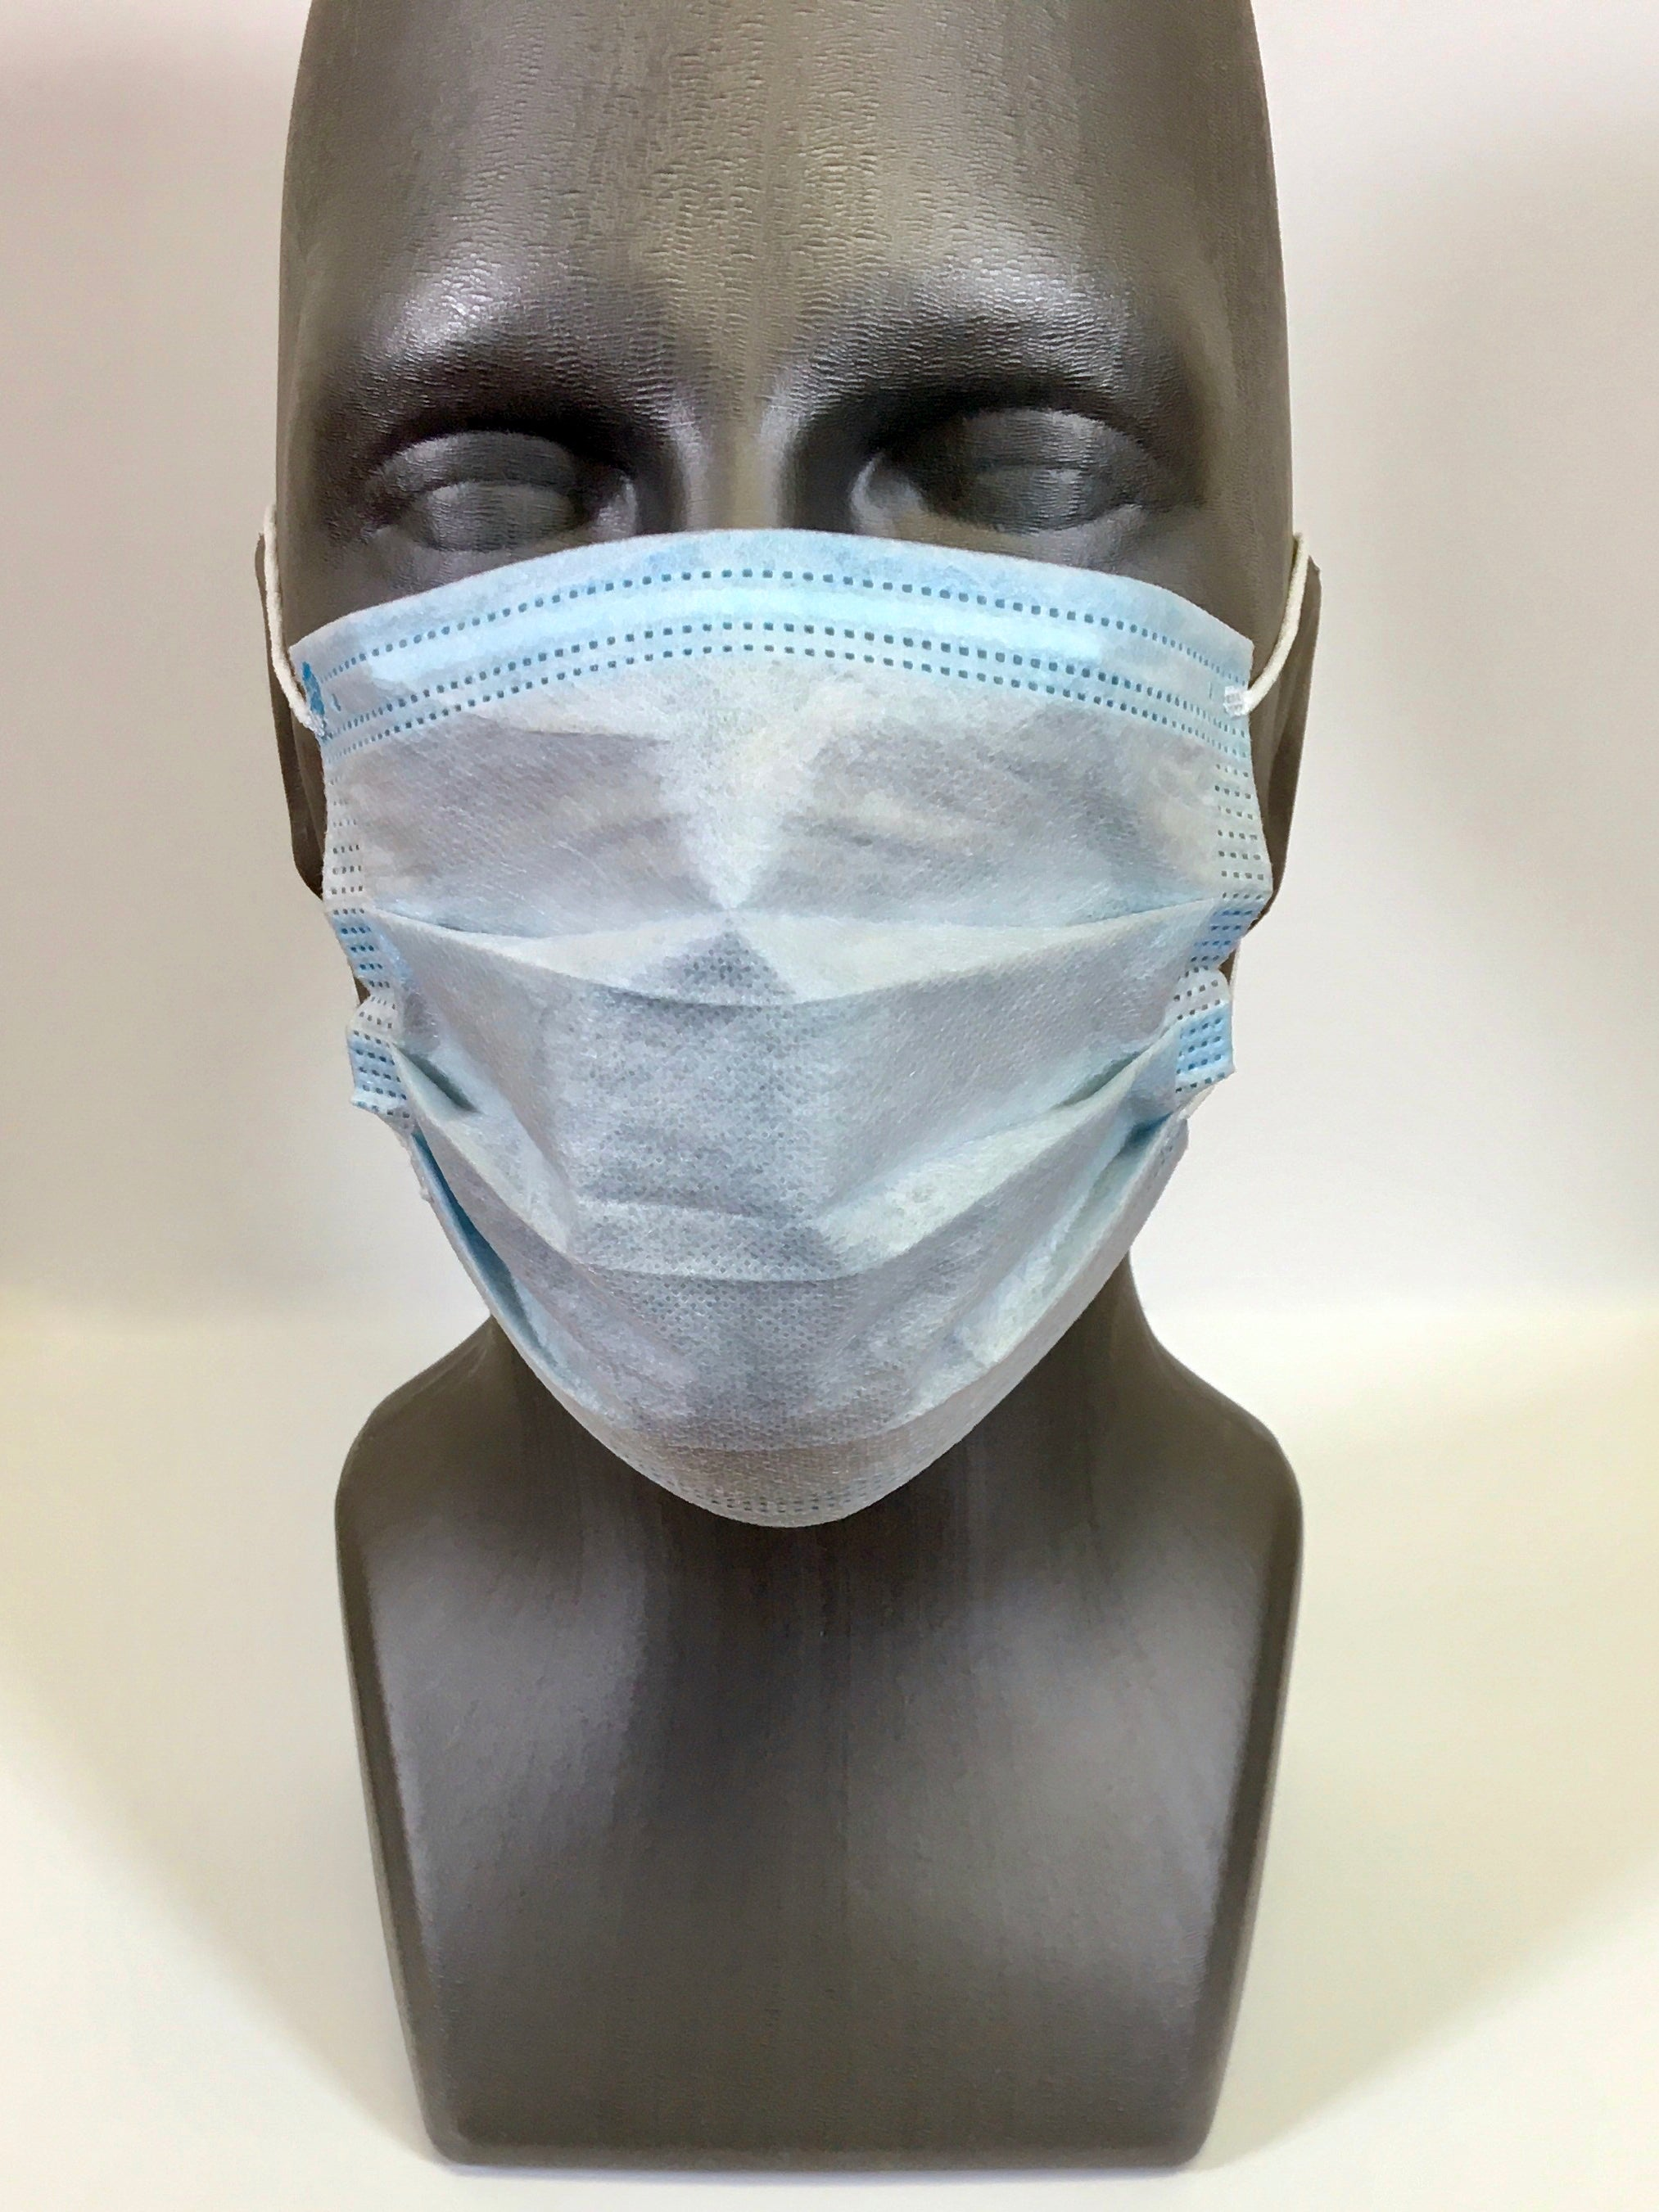 Protective Face Mask being worn on a mannequin head. The Mask covers nose and chin with a concealed moldable nose bridge.